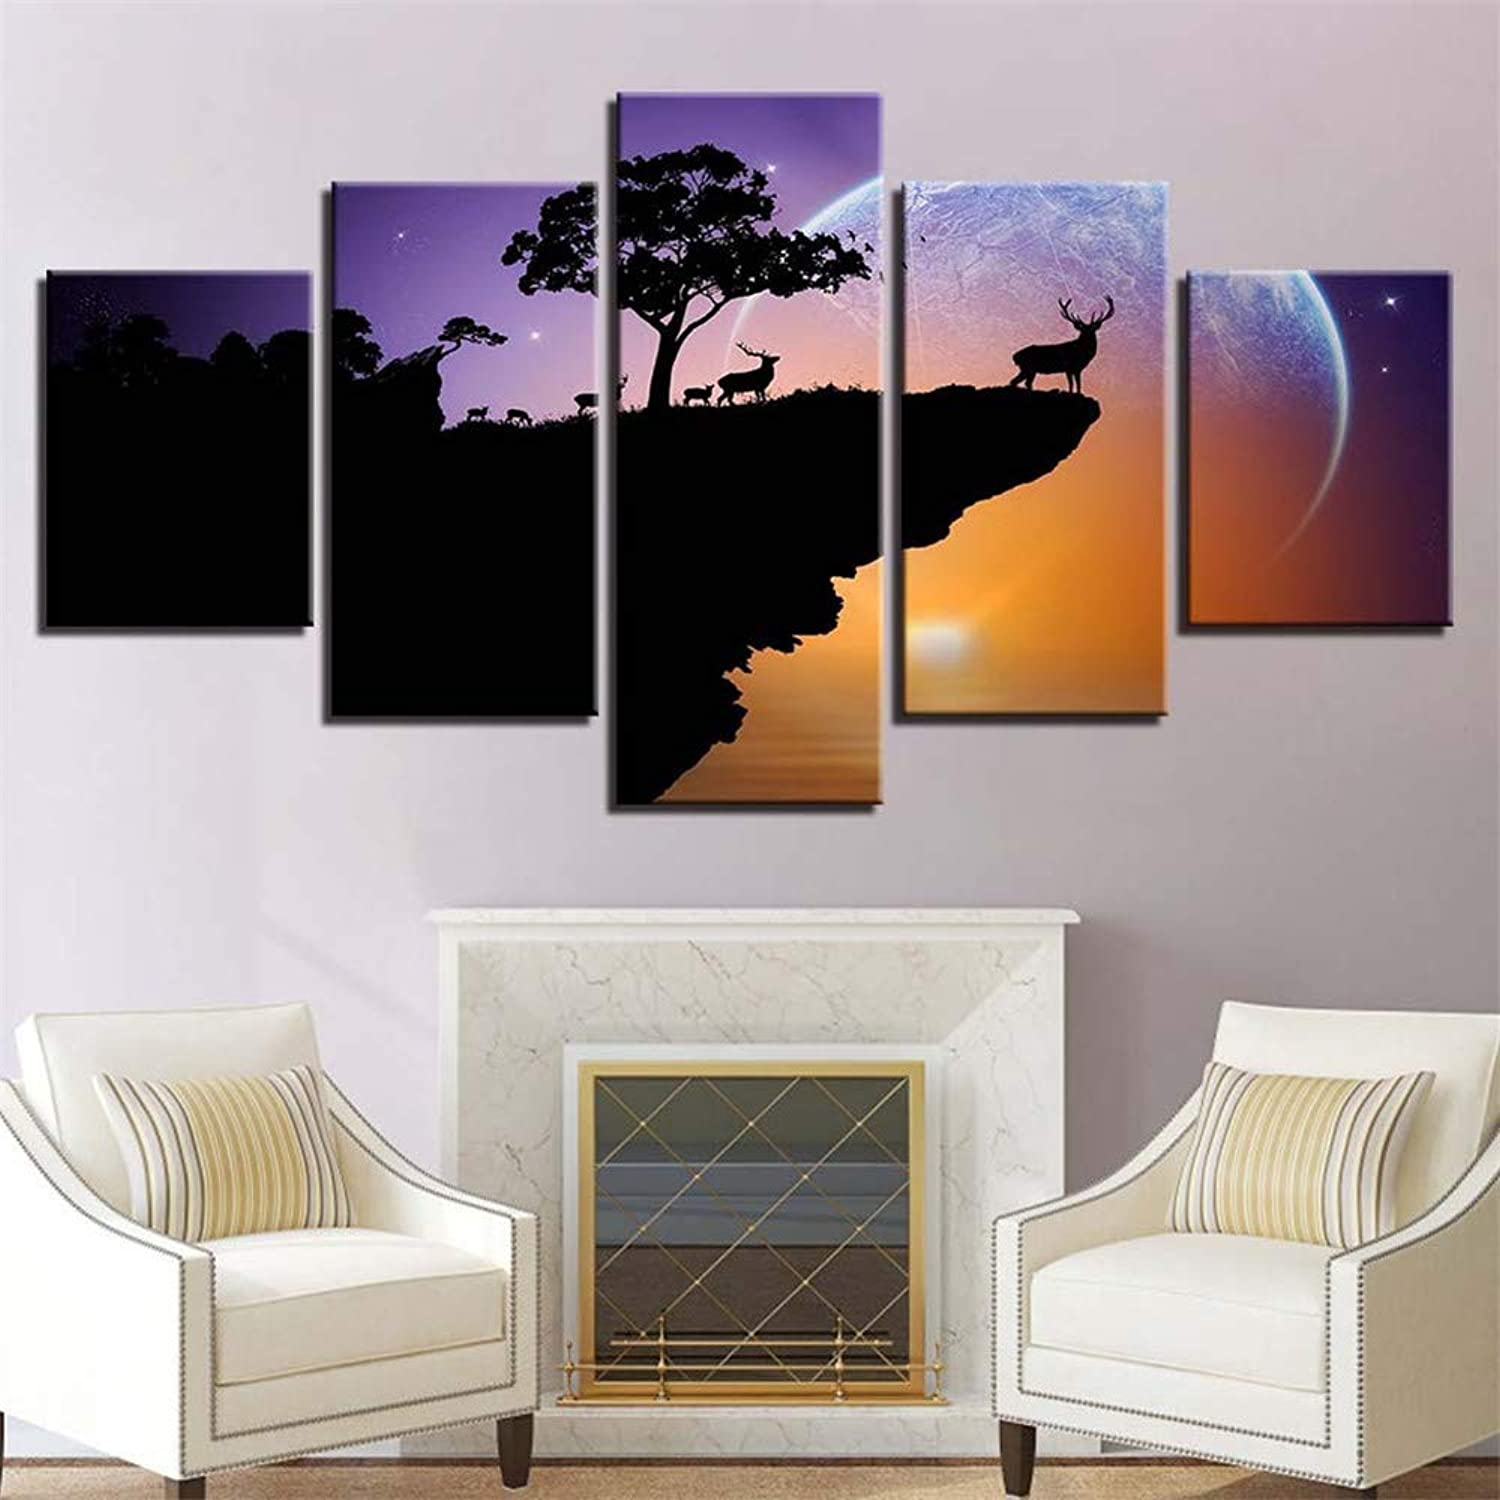 Loiazh  Image Printed On Non Woven Canvas  Wall Art Print Picture  Photo  5 Pieces  Frameless  Evening Elk 55x22 45x20x2 35x20x2(cm)